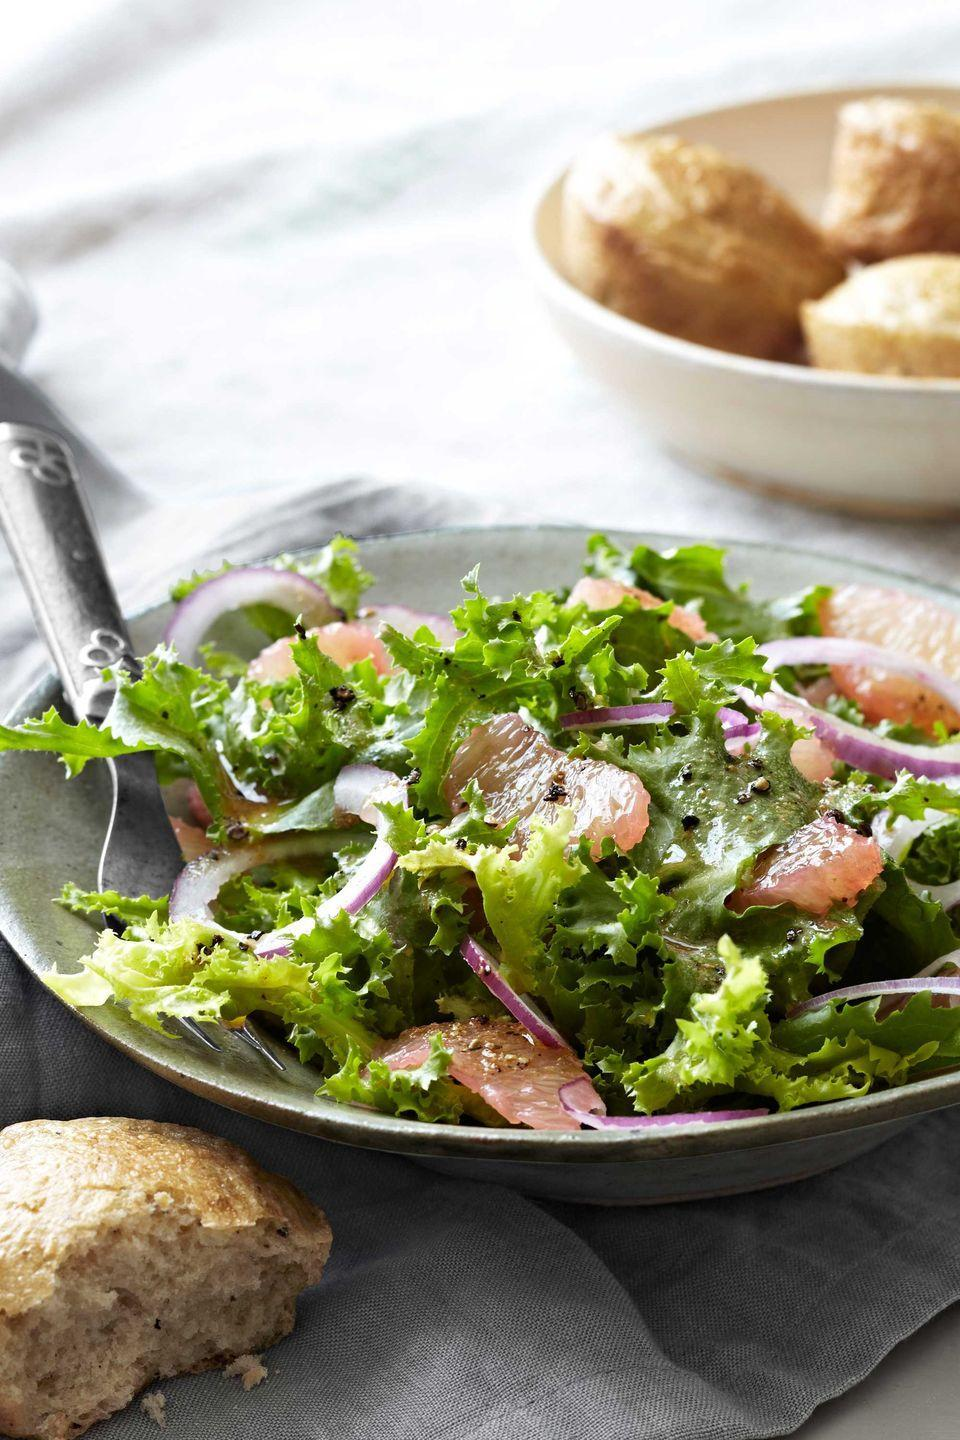 "<p>This bright salad features sweet-tart grapefruit and slightly bitter chicory for a refreshing addition to your holiday table.</p><p><strong><a href=""https://www.countryliving.com/food-drinks/recipes/a4251/ruby-red-grapefruit-chicory-salad-recipe-clv1112/"" rel=""nofollow noopener"" target=""_blank"" data-ylk=""slk:Get the recipe"" class=""link rapid-noclick-resp"">Get the recipe</a>.</strong></p>"